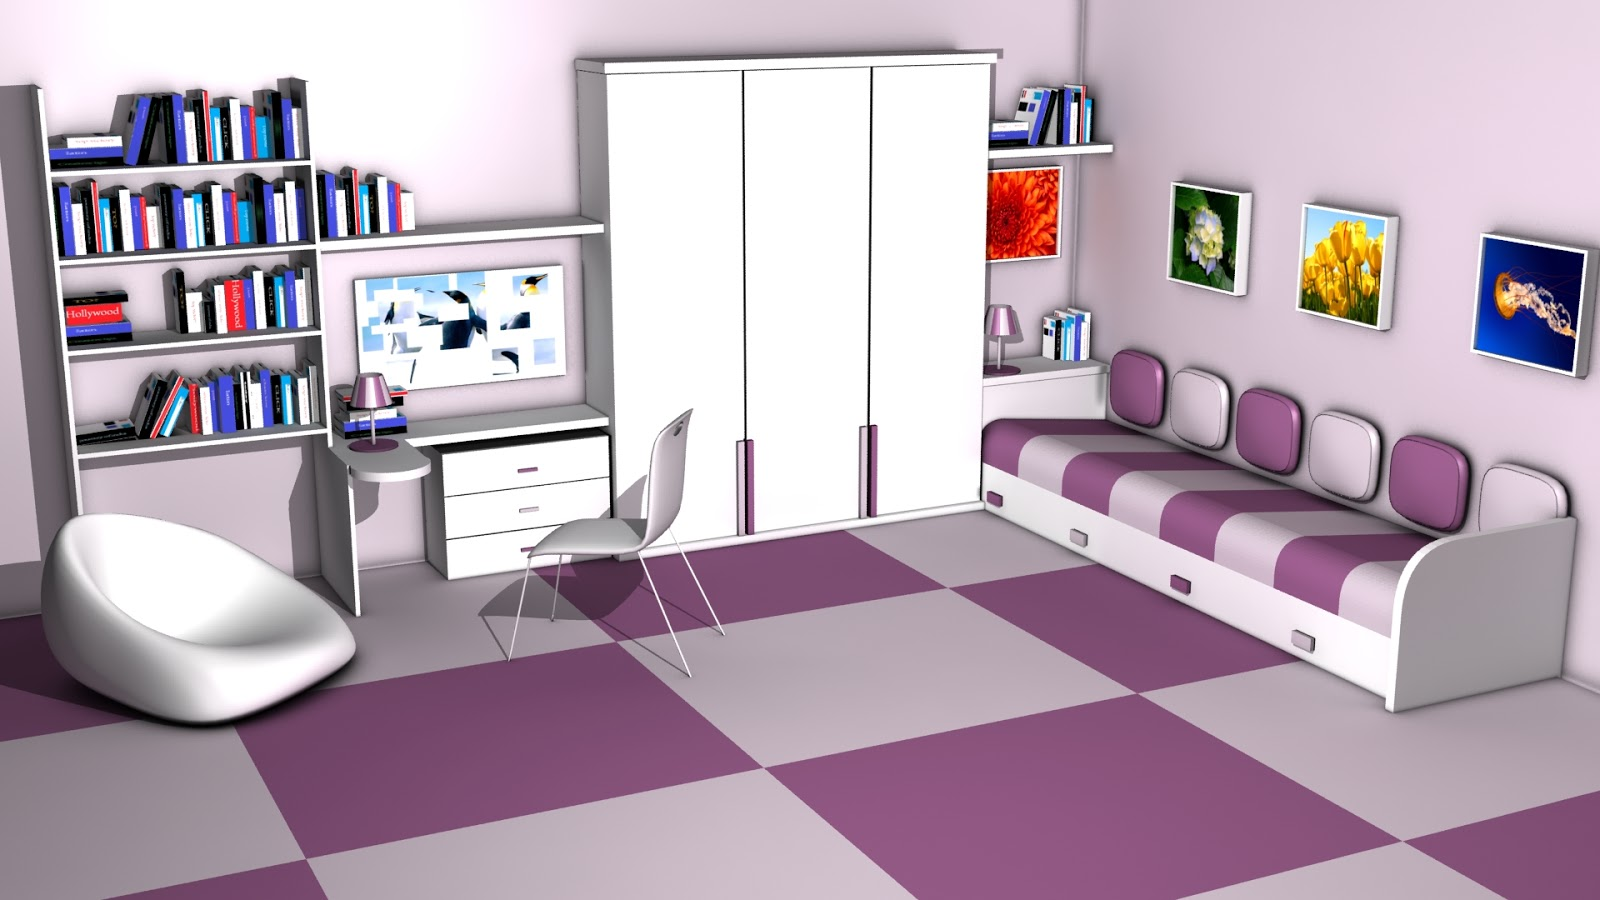 Sajid designs room interior design 3ds max for Designer room decor